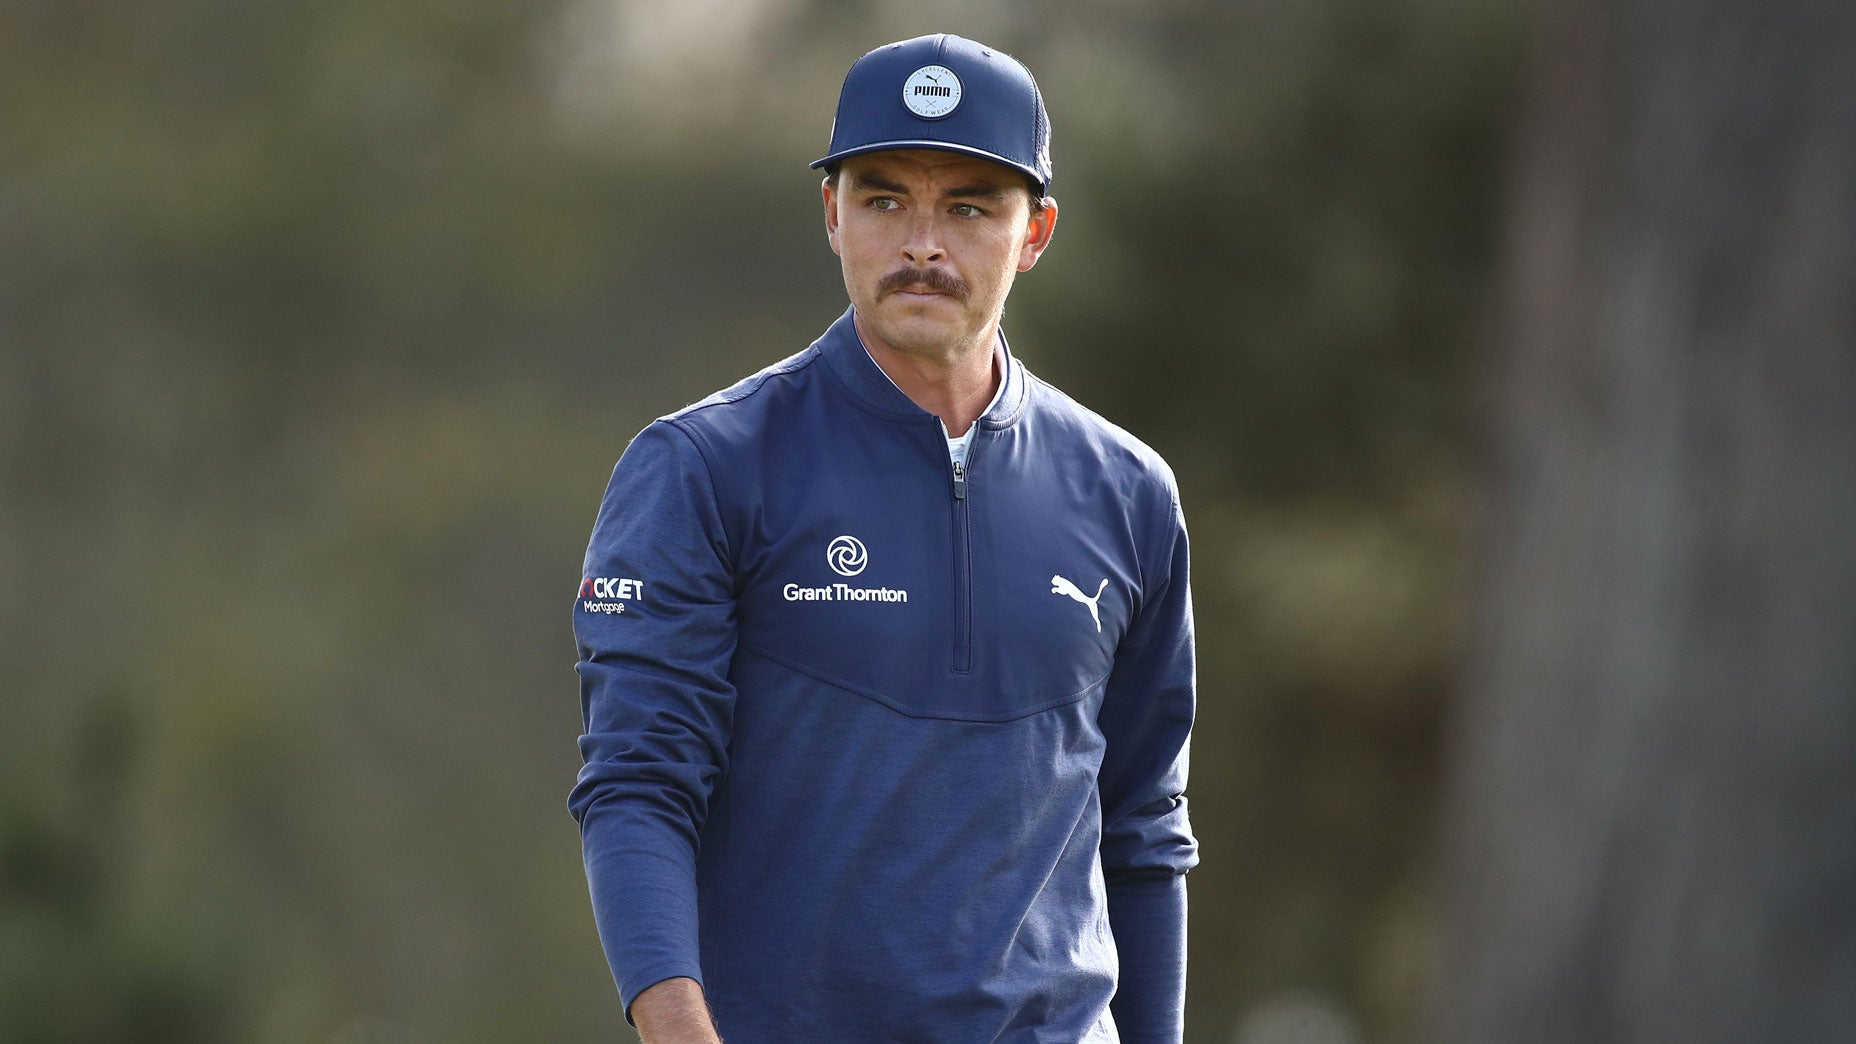 Rickie Fowler, Sergio Garcia among notables to miss cut at Harding Park